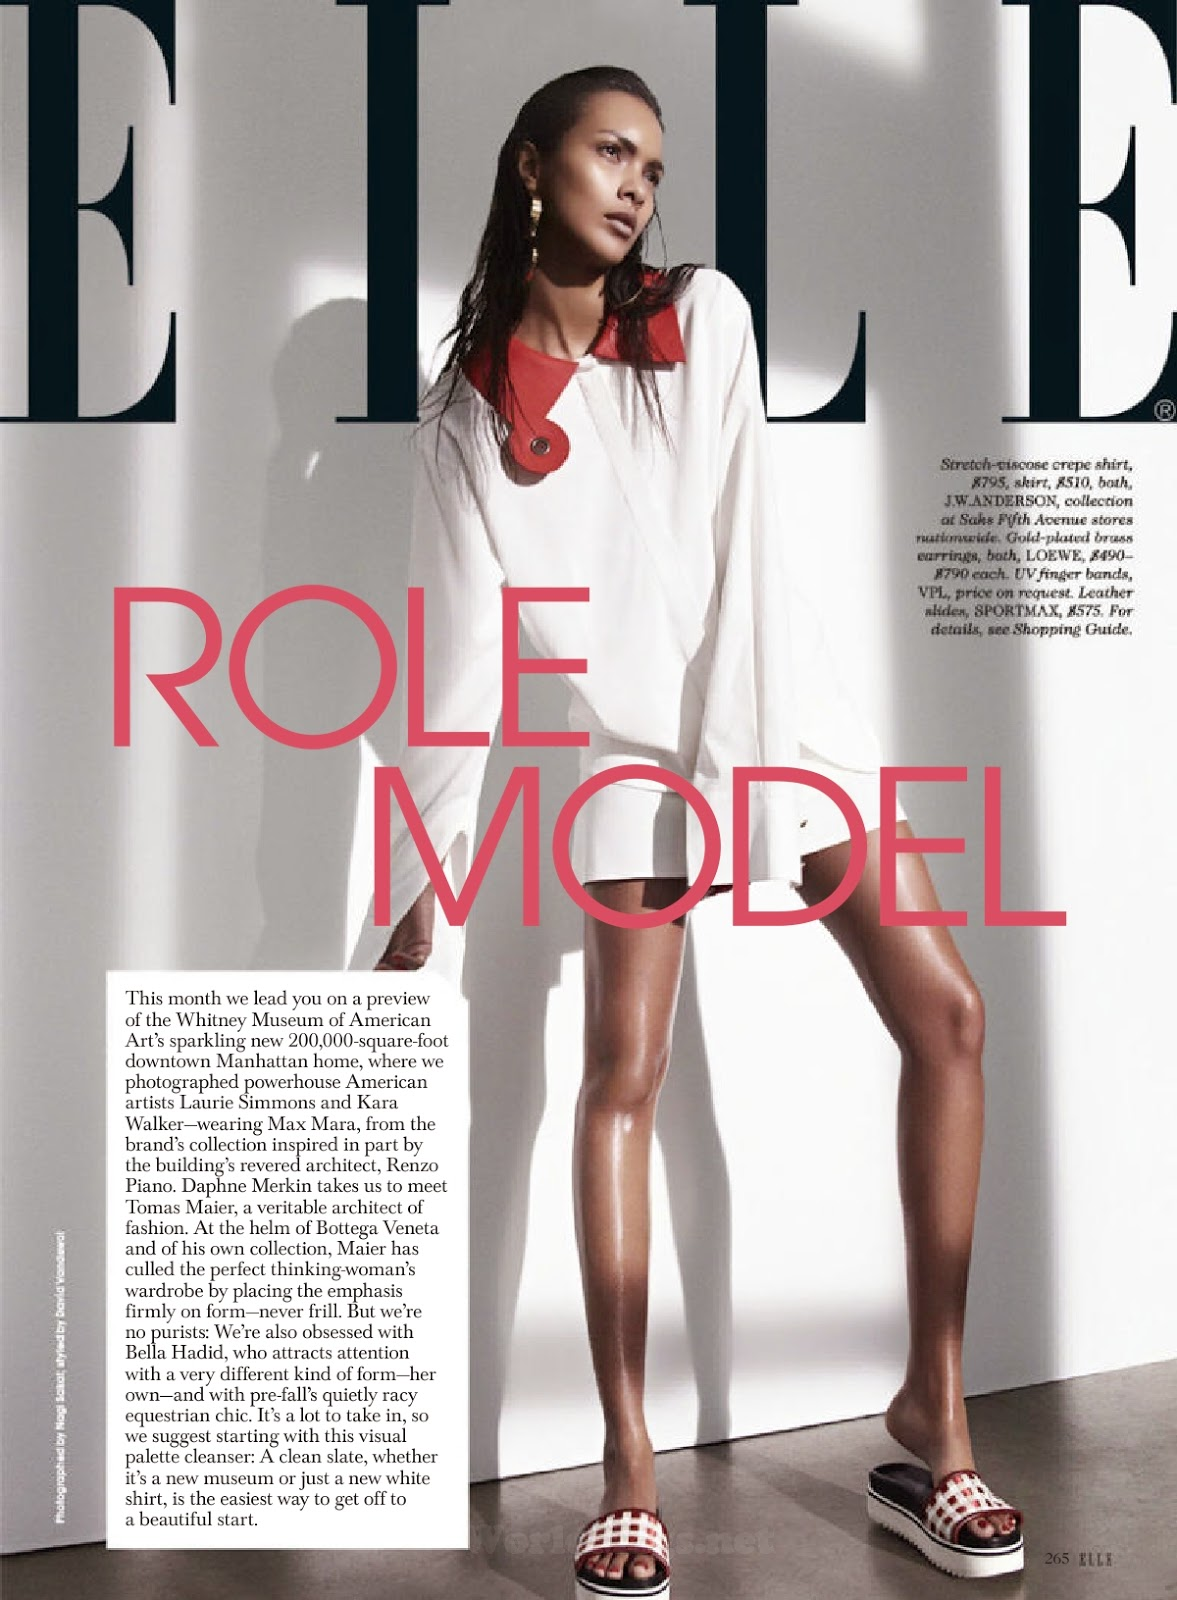 Fashion Model @ Lais Ribeiro - Elle USA, May 2015